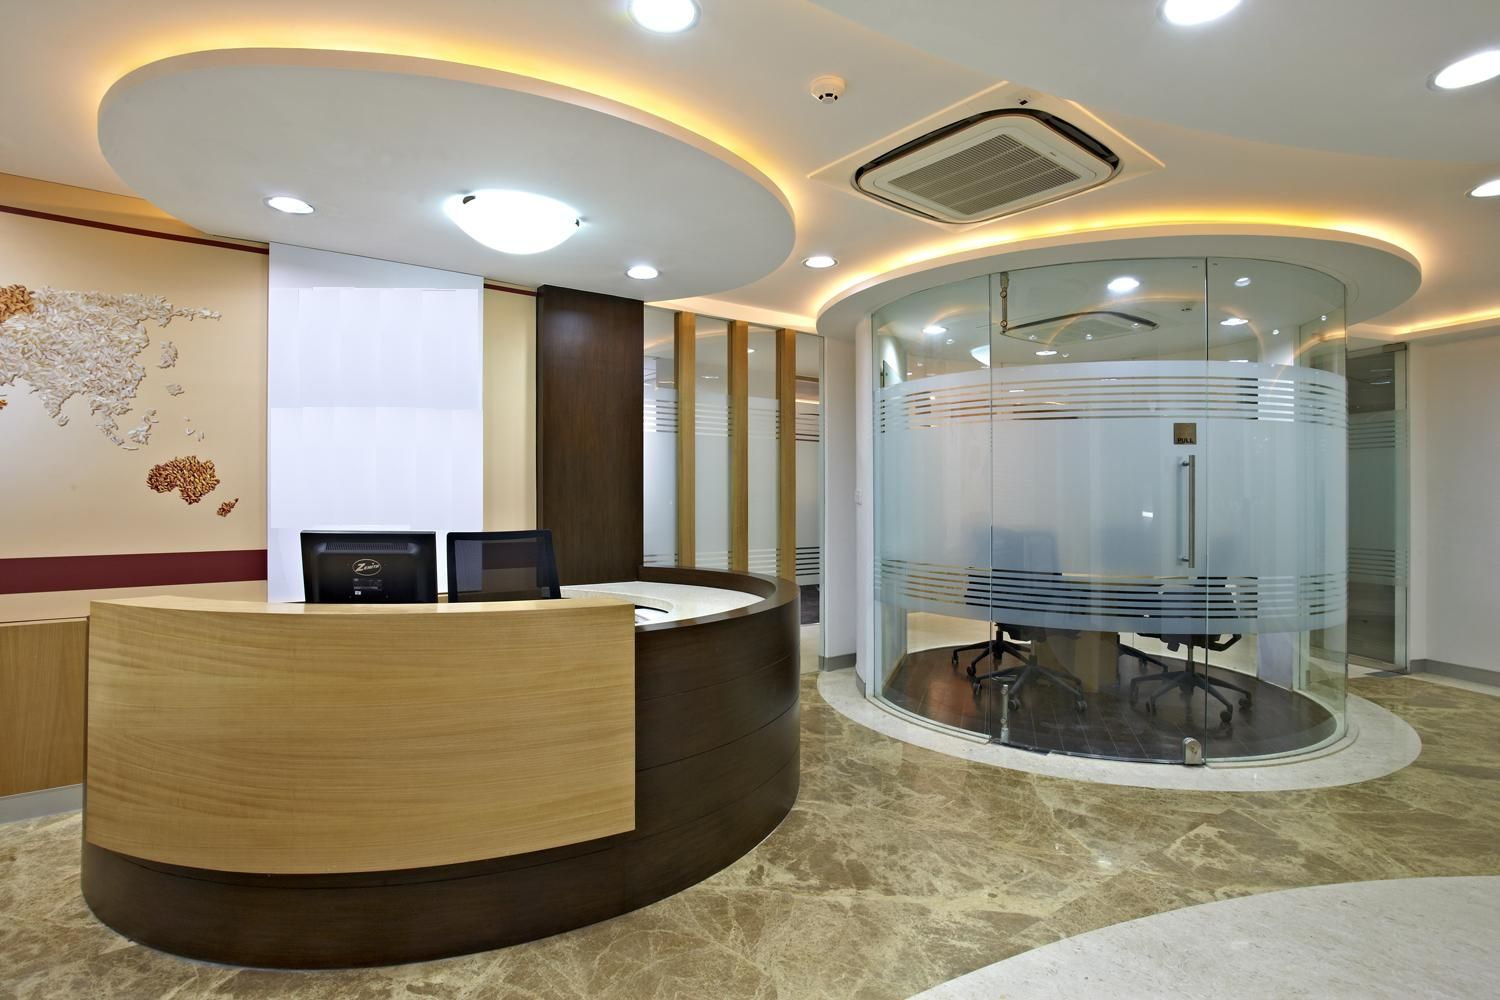 resaiki is one of the leading architectural and interior designers